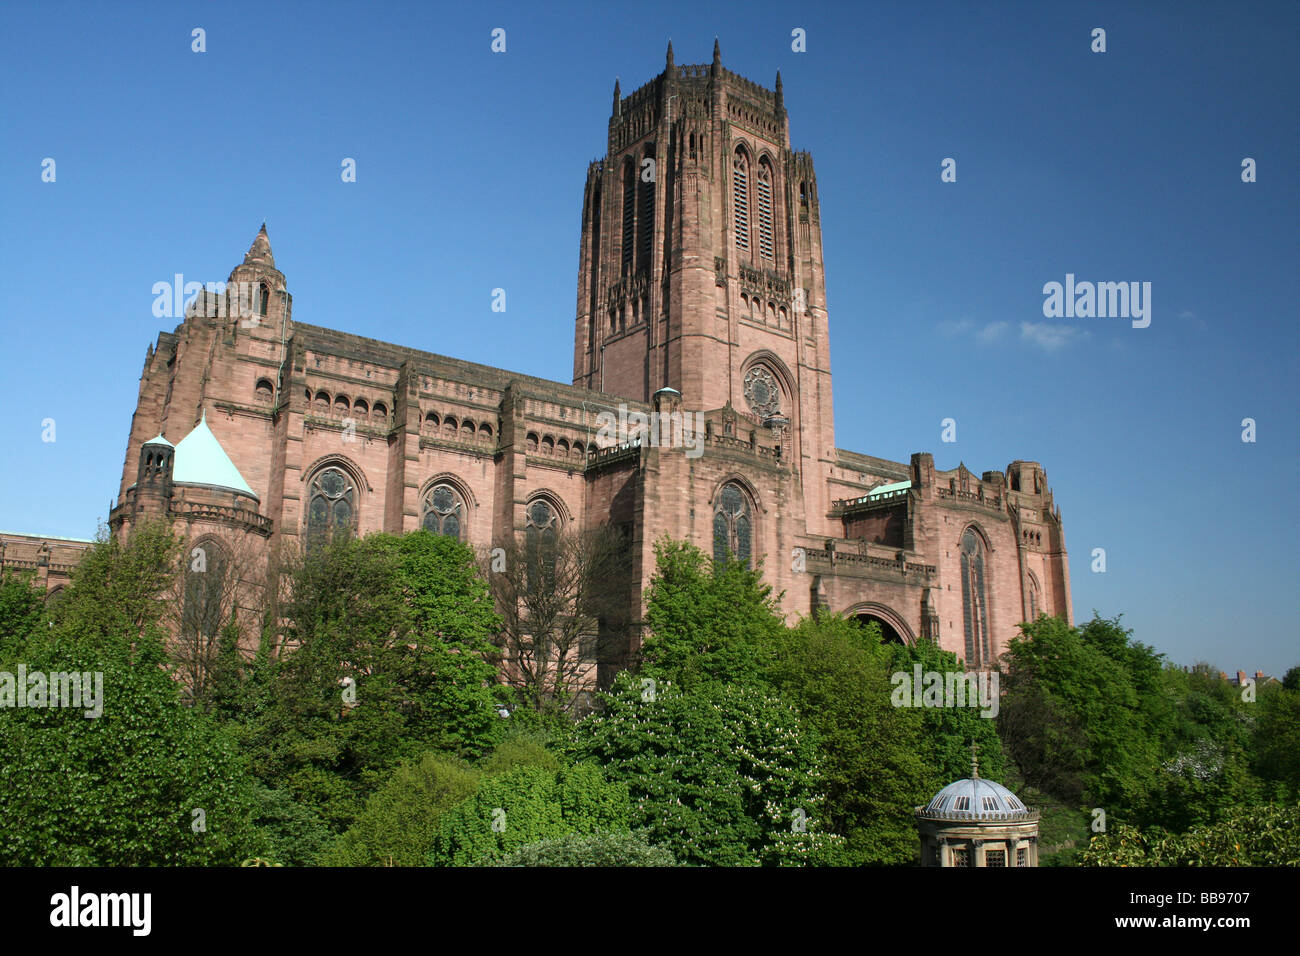 North Elevation Of Liverpool Anglican Cathedral, Merseyside, UK - Stock Image